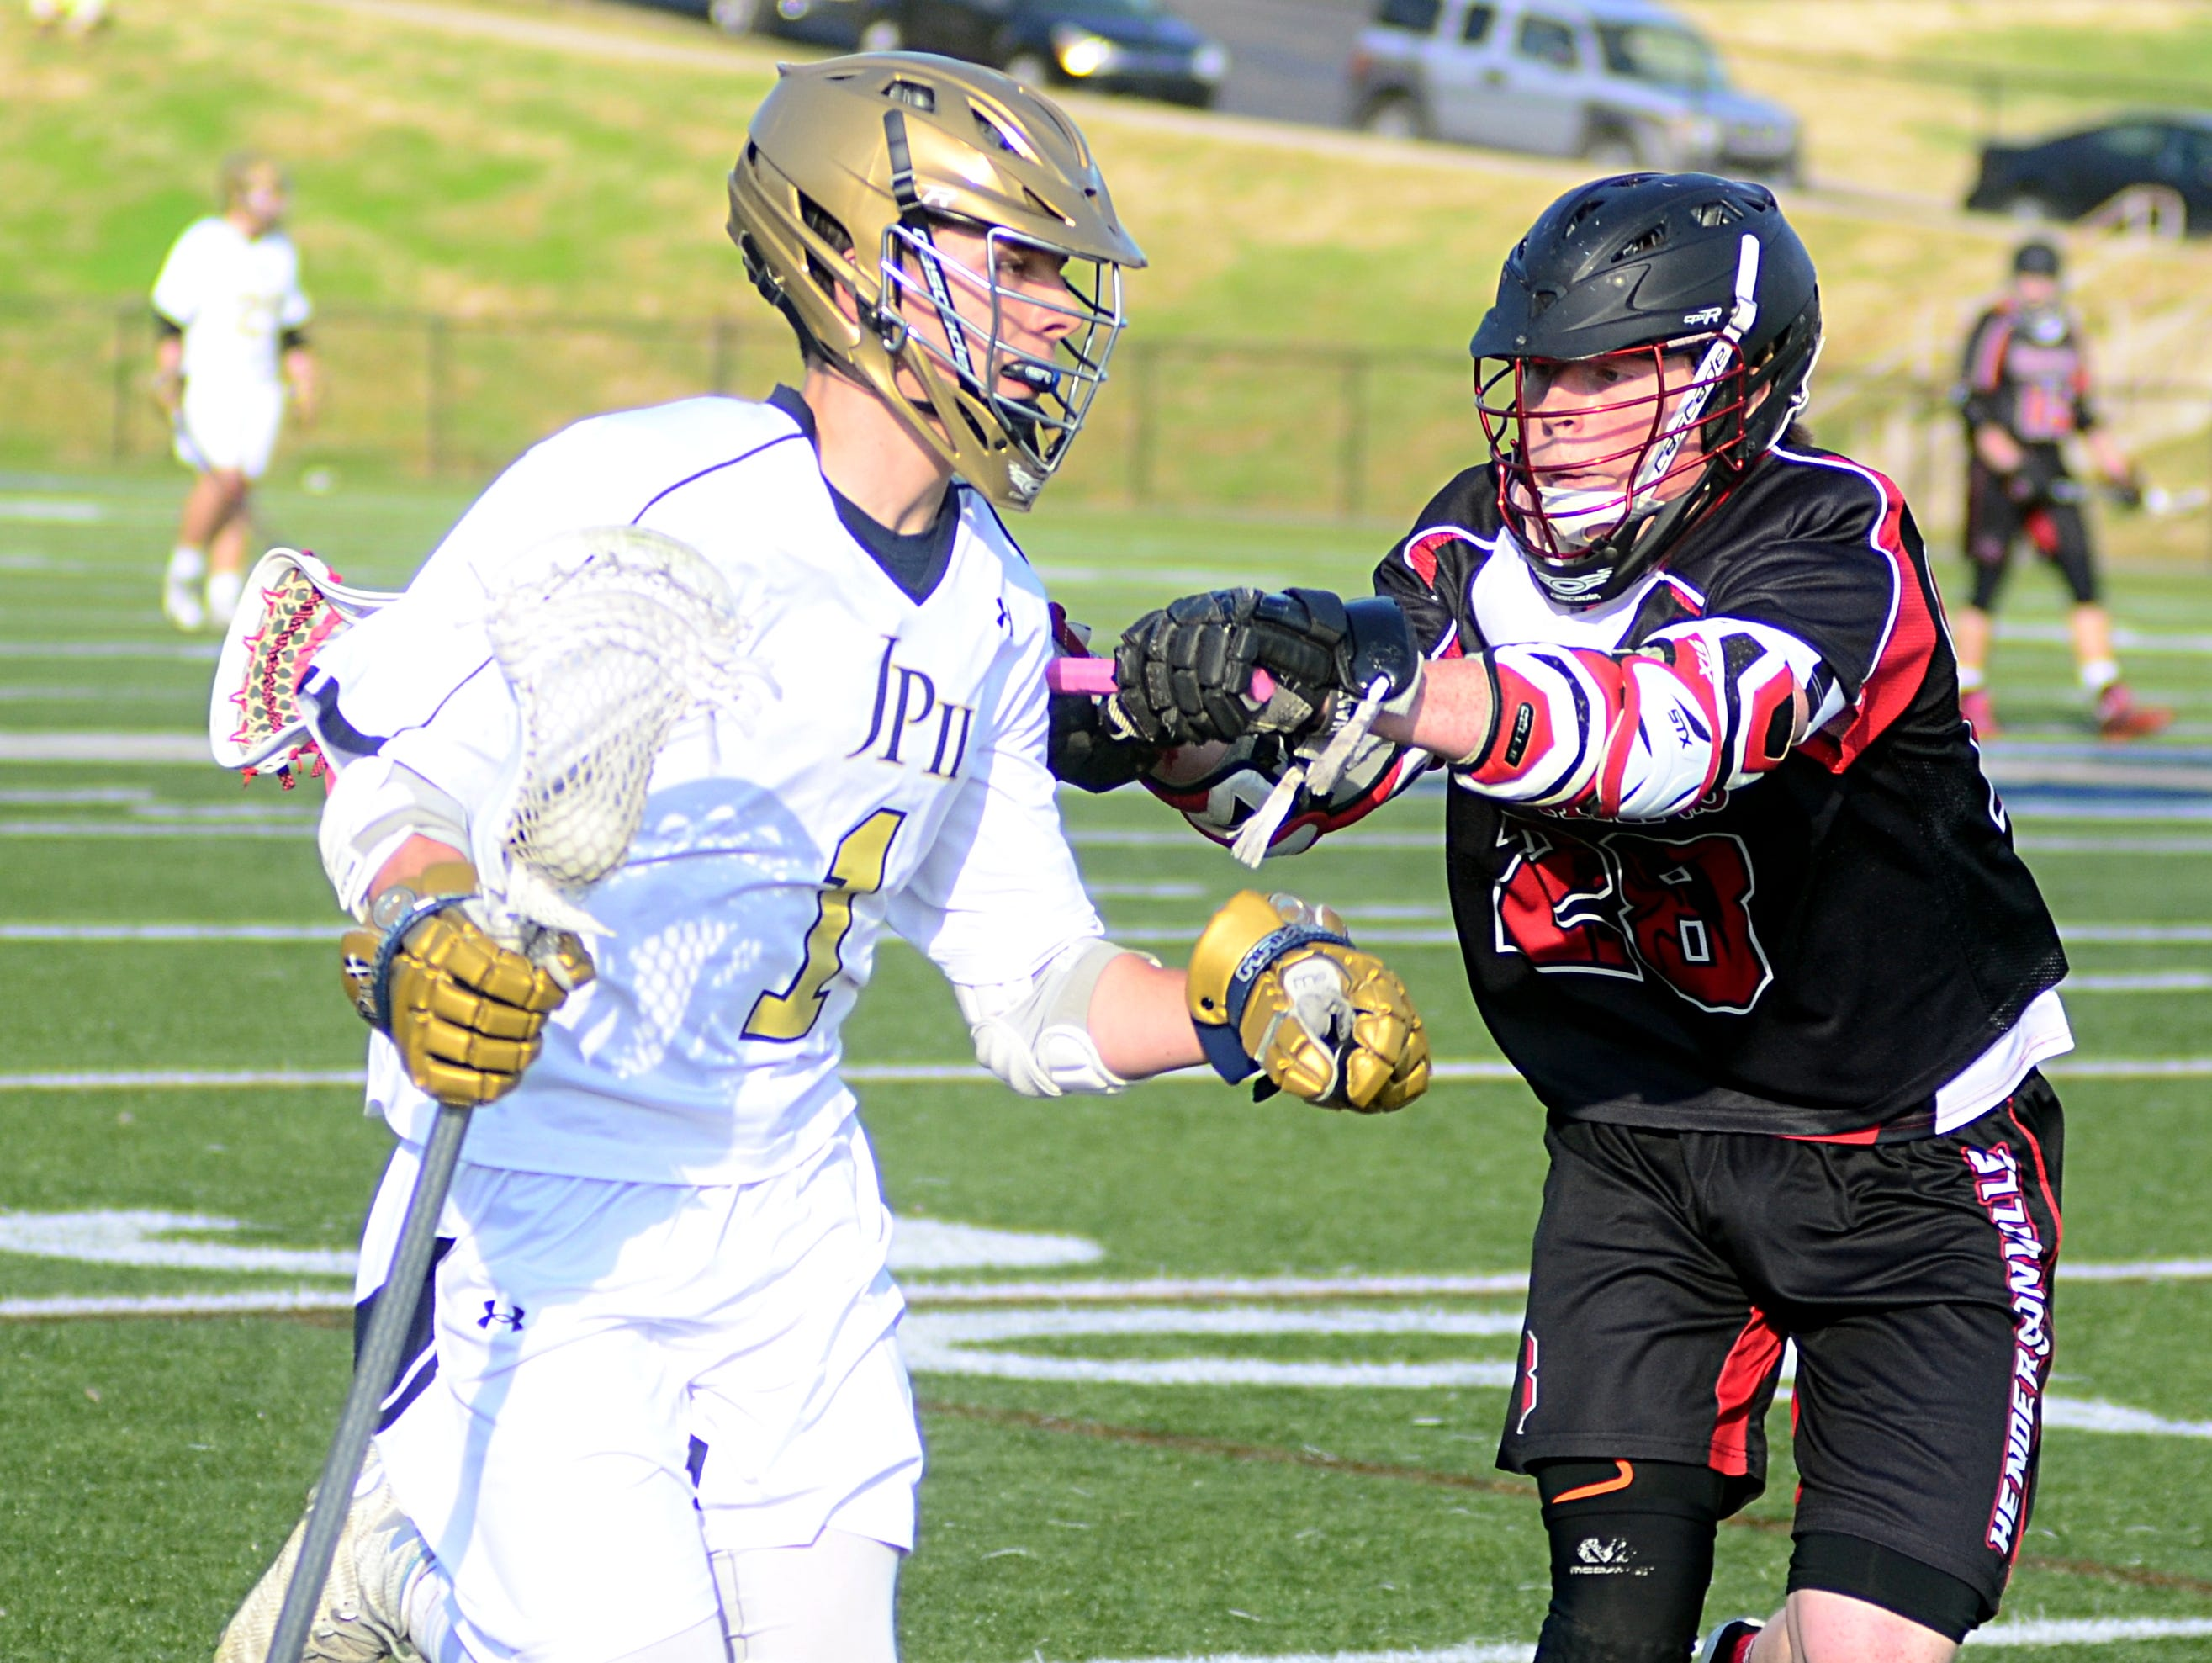 Pope John Paul II High sophomore midfielder Nolan Underhill absorbs a stick check from Hendersonville Spartans senior Fredrick Thacker during first-quarter action. Underhill scored twice in the Knights' 17-4 victory.